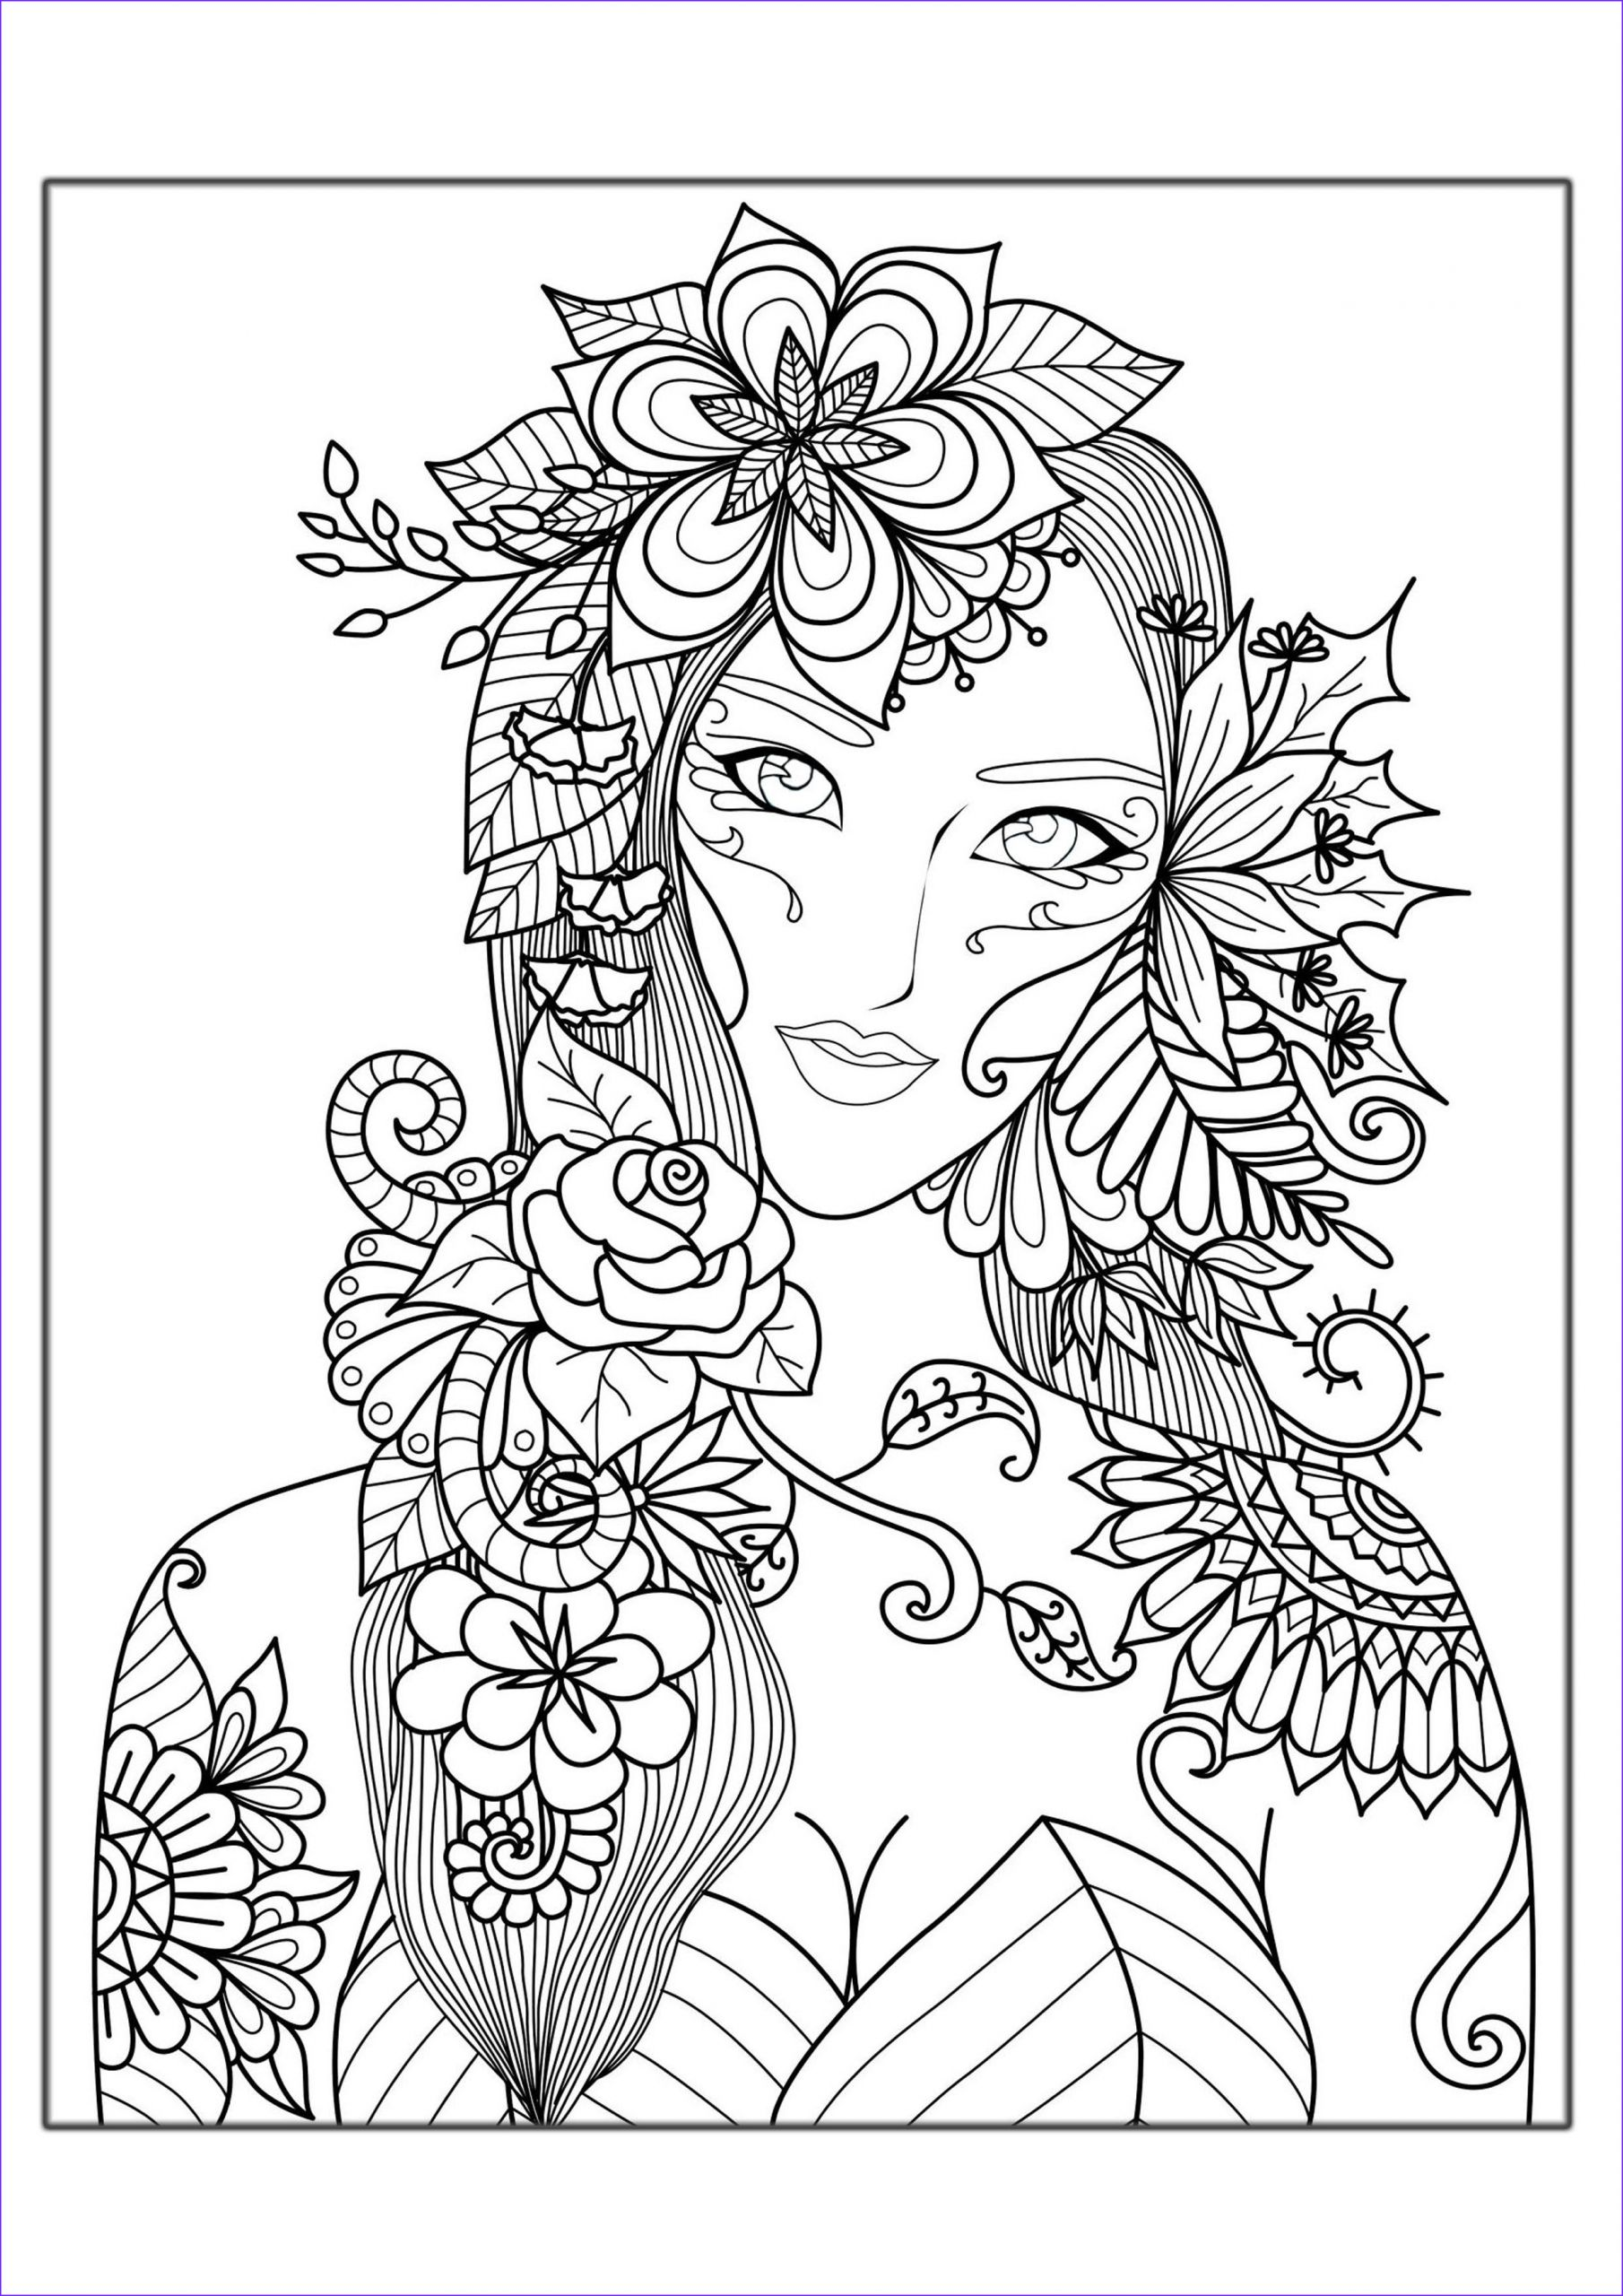 6 image=anti stress coloring page adults woman flowers 1